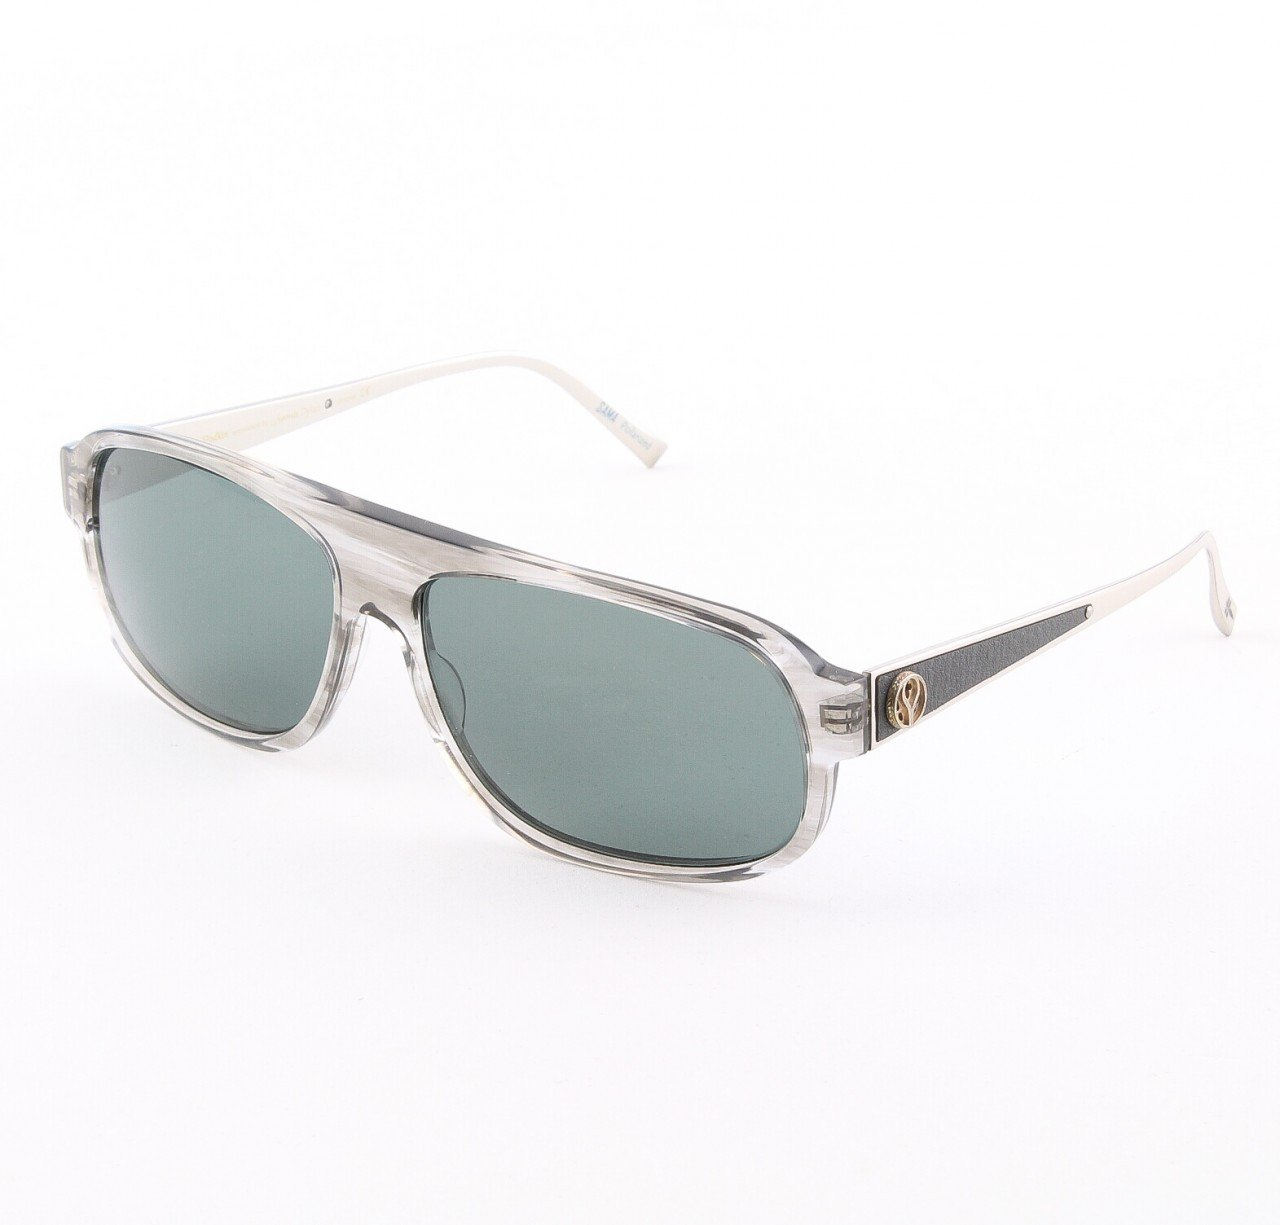 Loree Rodkin Dylan Sunglasses Smoke w/ Polarized Lenses, Leather and Sterling Silver